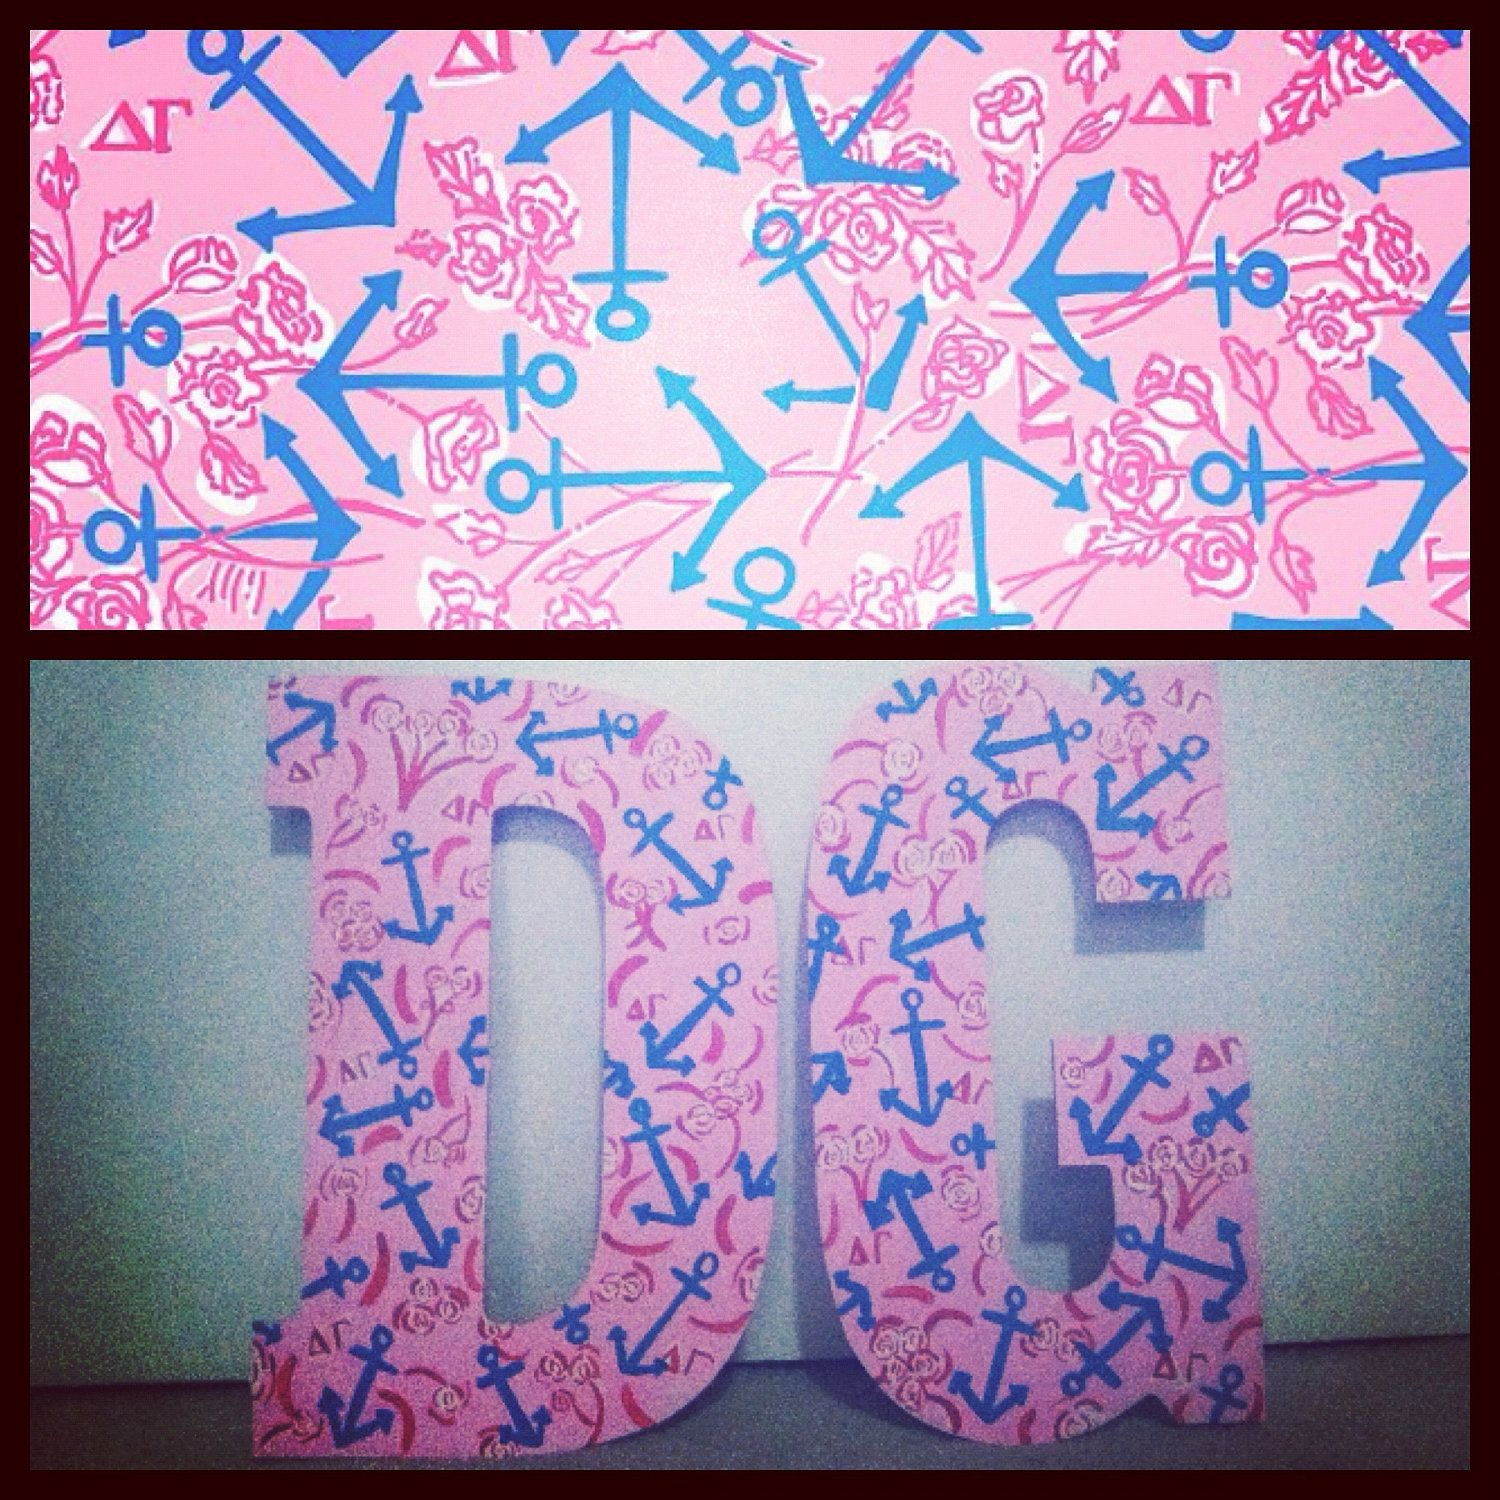 Lilly Pulitzer Sorority Letters Lilly Pulitzer Sorority Letters 3200 Via Etsy Wish